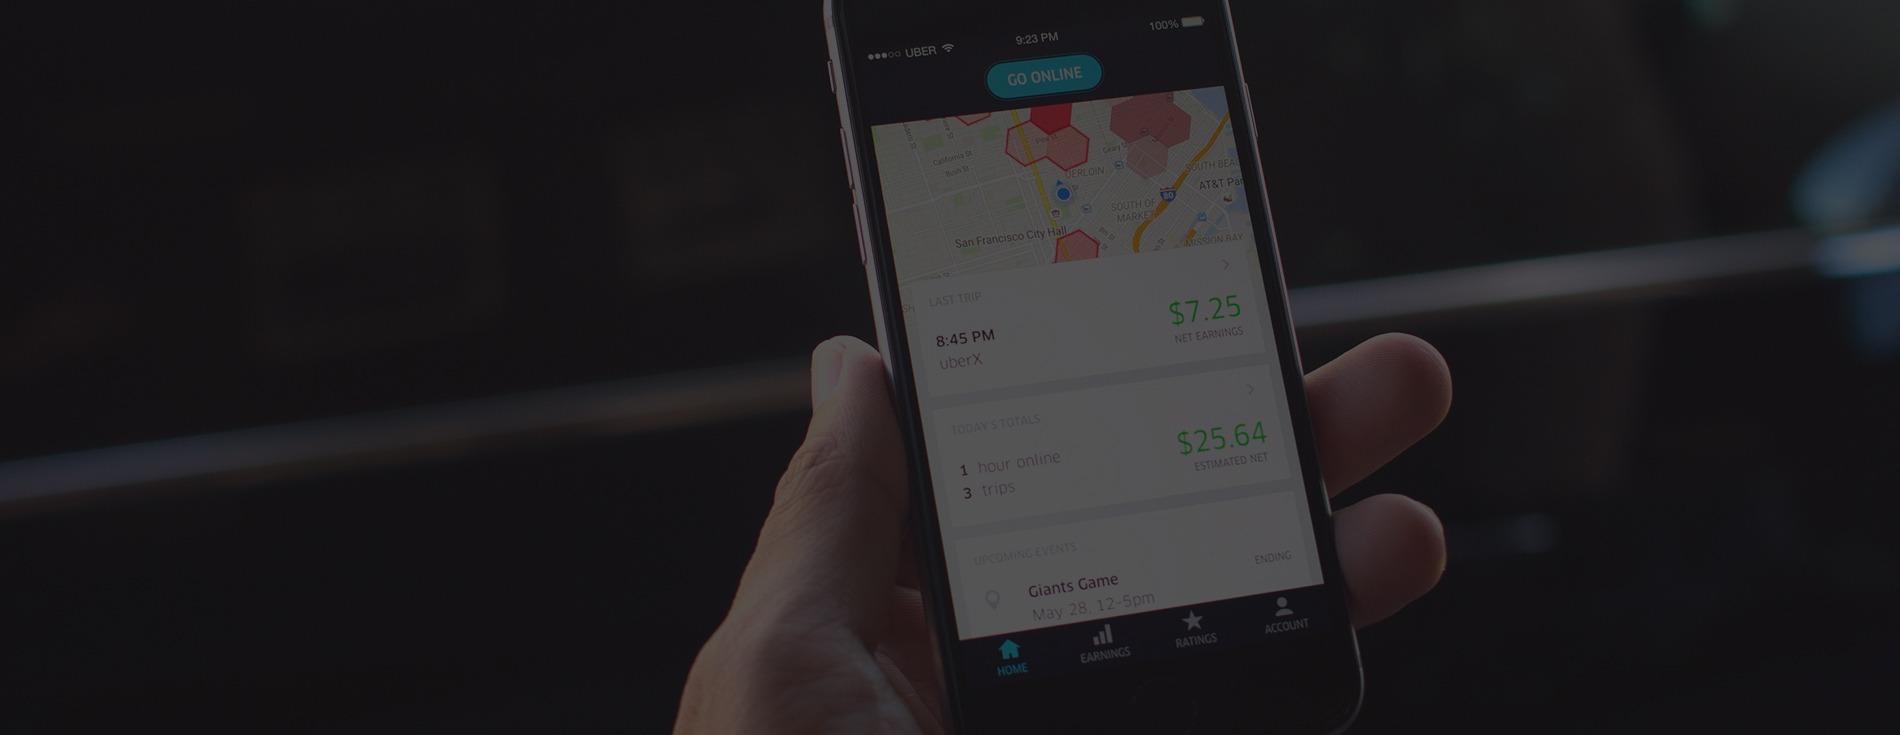 Uber | Where To?